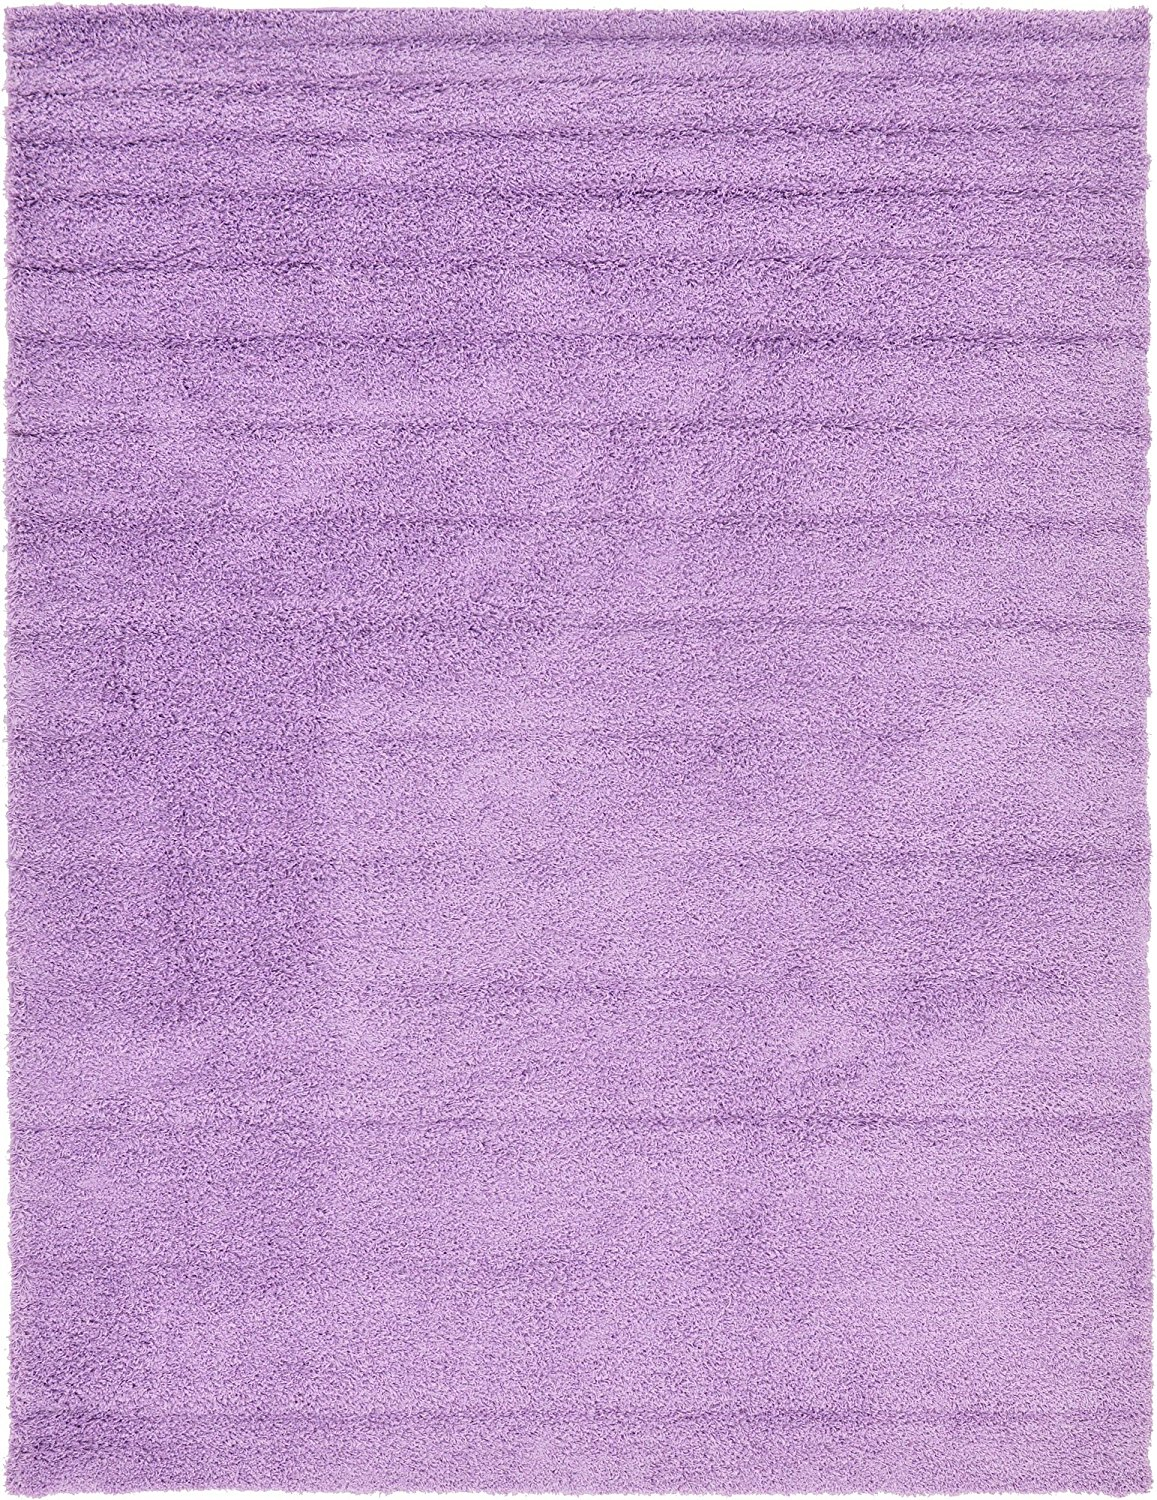 A2Z Rug Cozy Shaggy Collection 9x12-Feet Solid Area Rug - Lilac